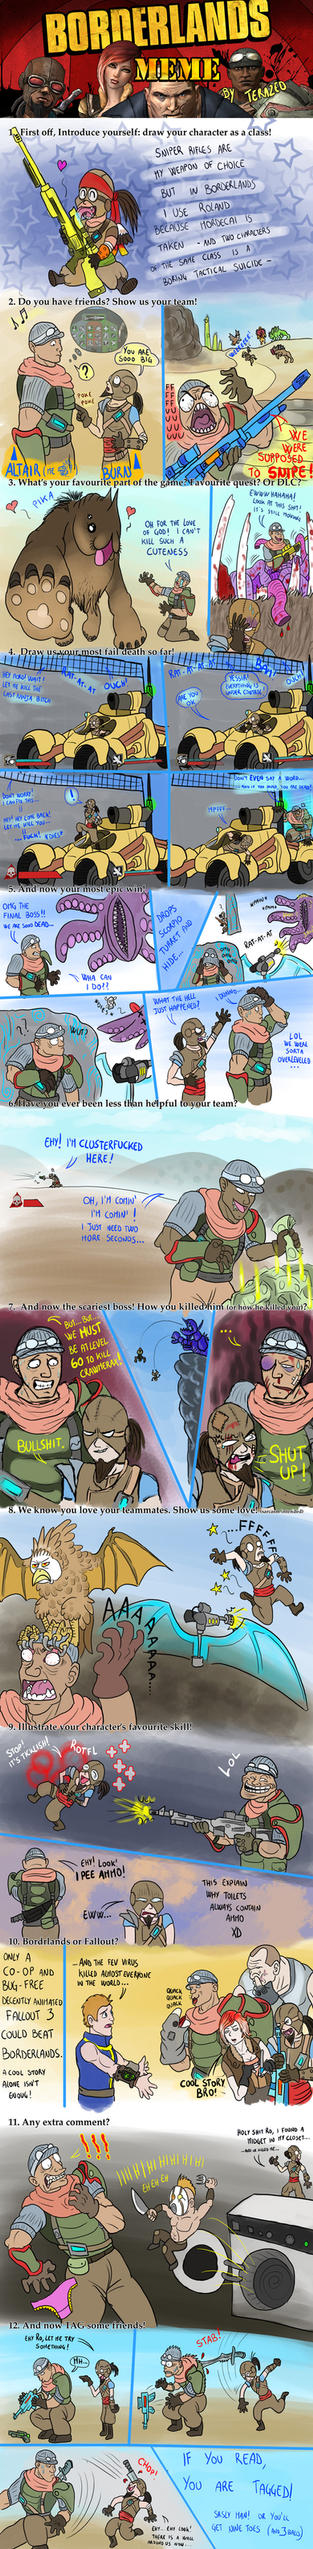 Borderlands awesome MEME by AltairSky